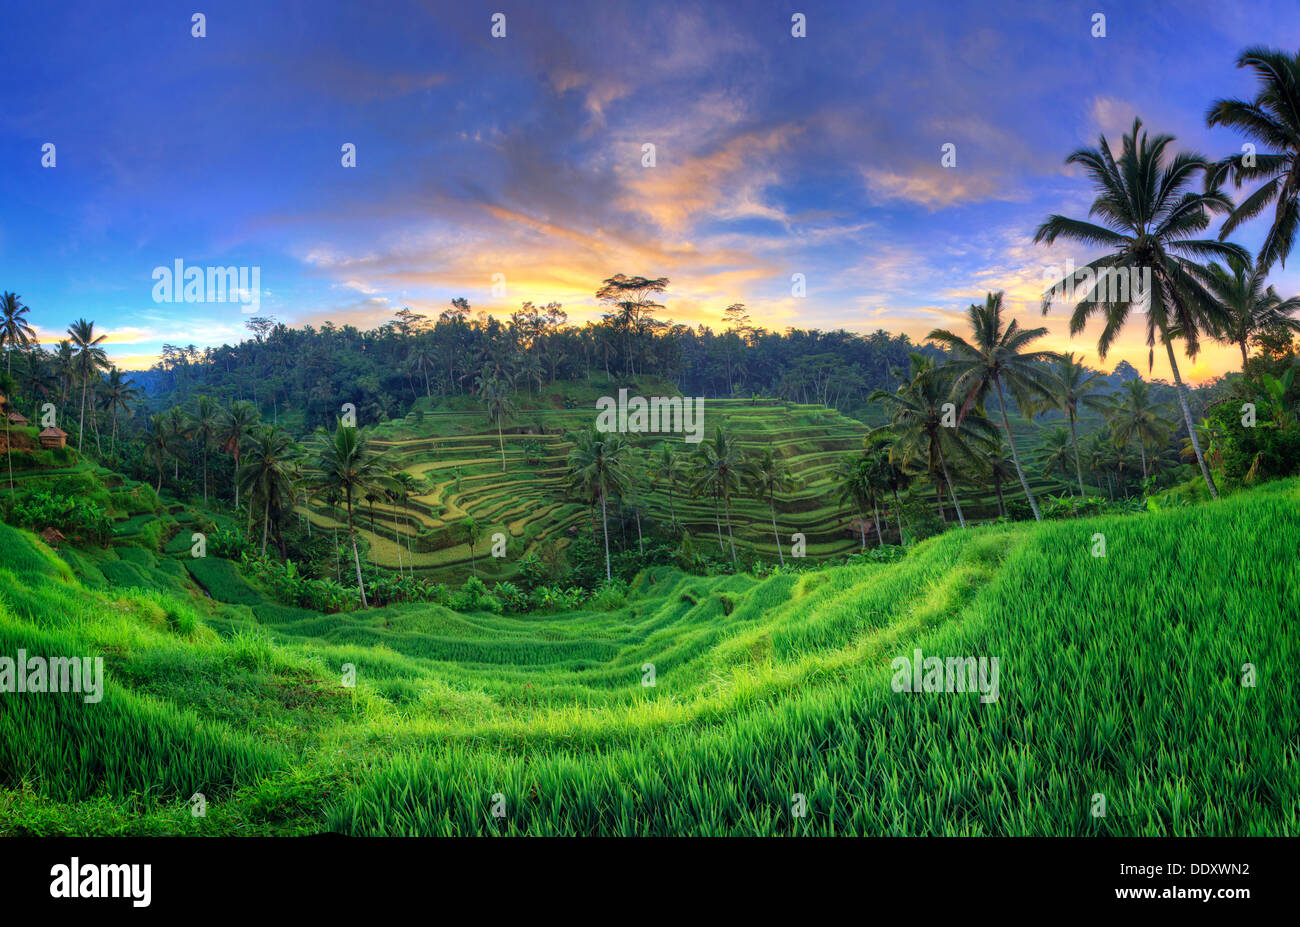 Indonesia, Bali, Ubud, Ceking Rice Terraces - Stock Image